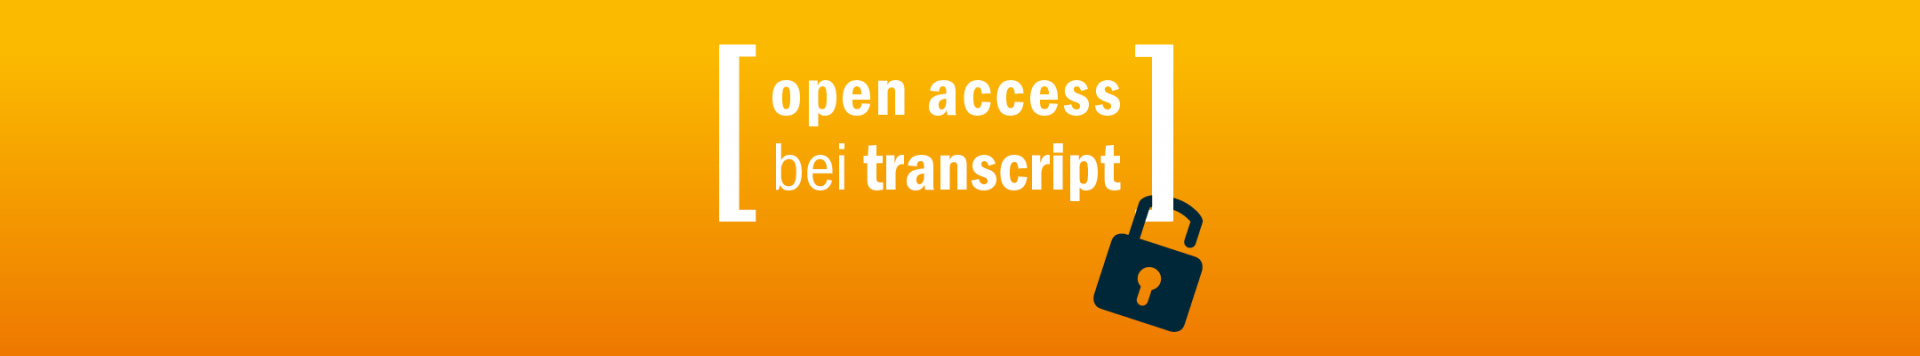 Banner Open Access bei transcript